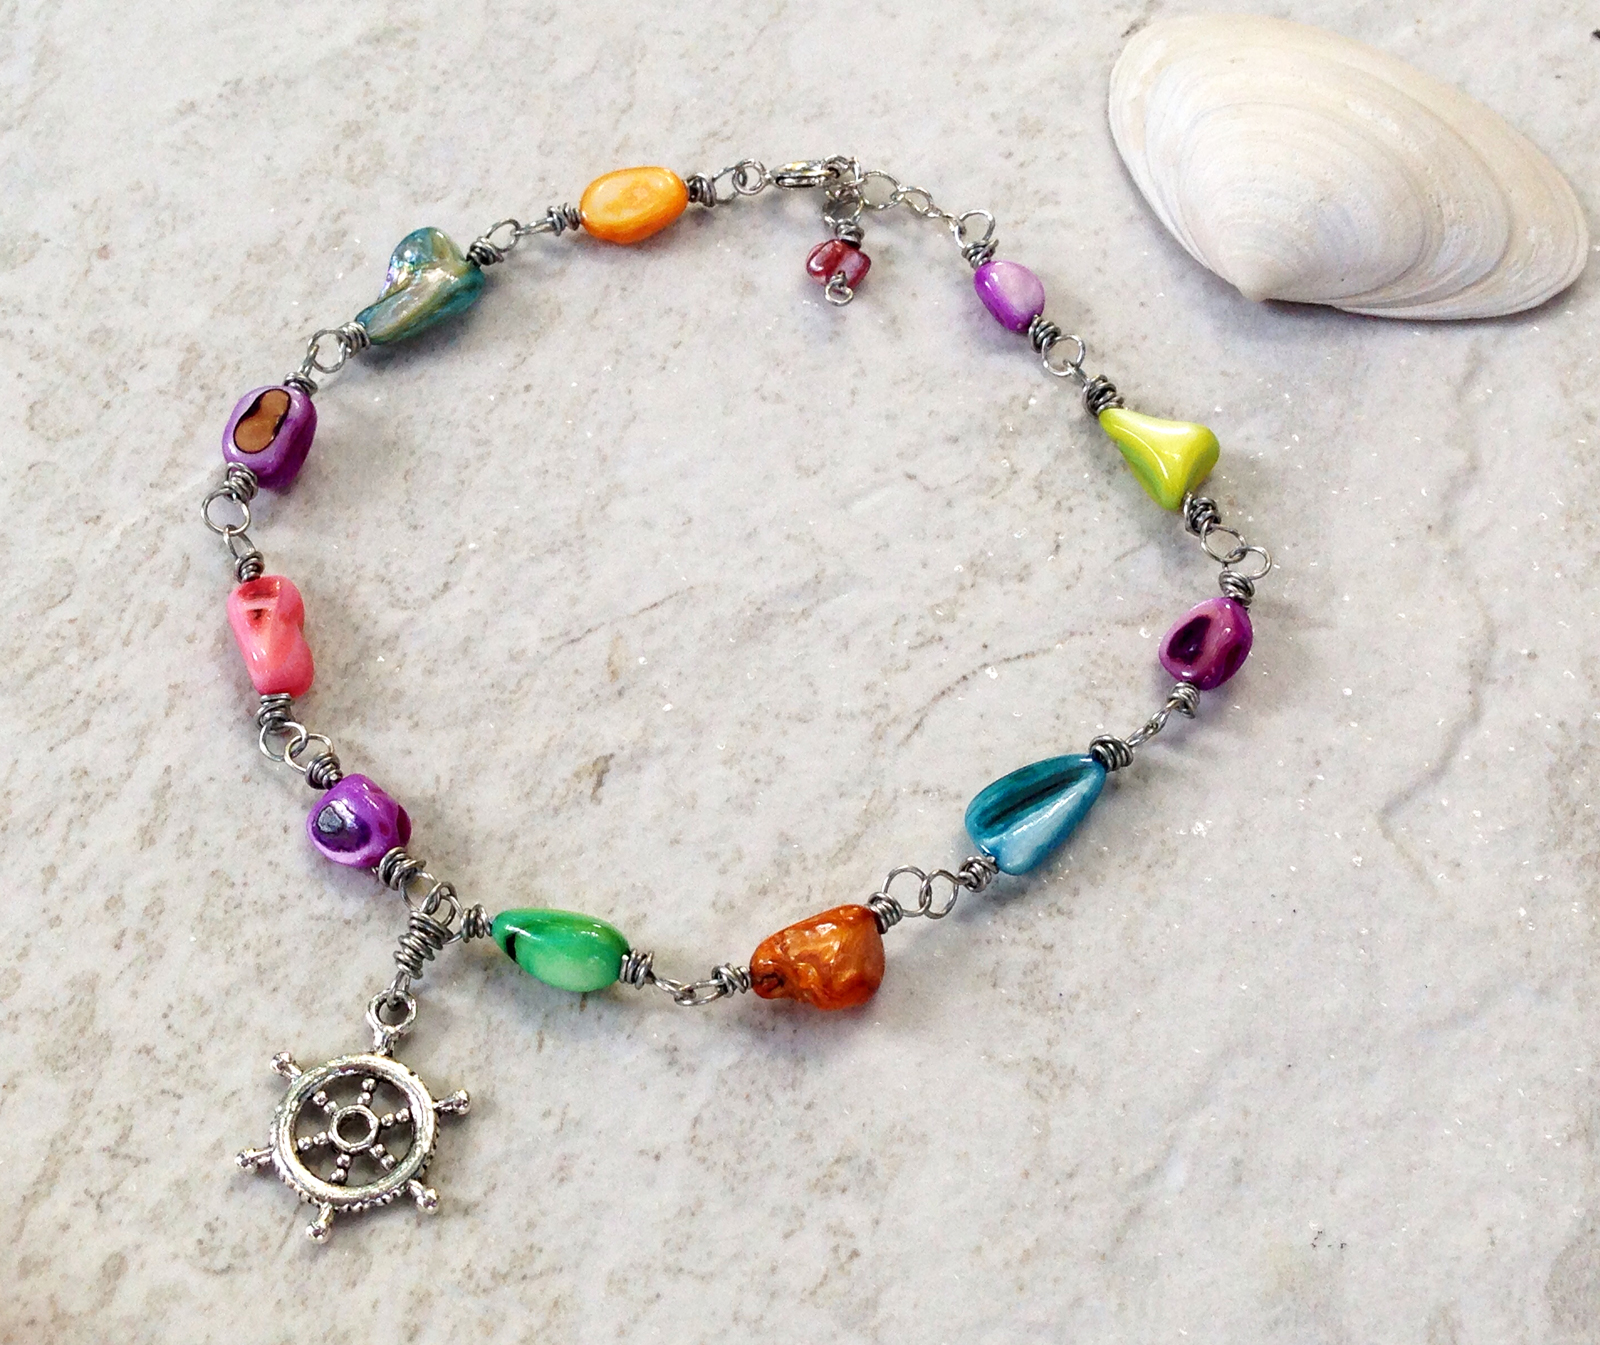 Anklet - Mother of Pearl with Ship's Wheel Charm